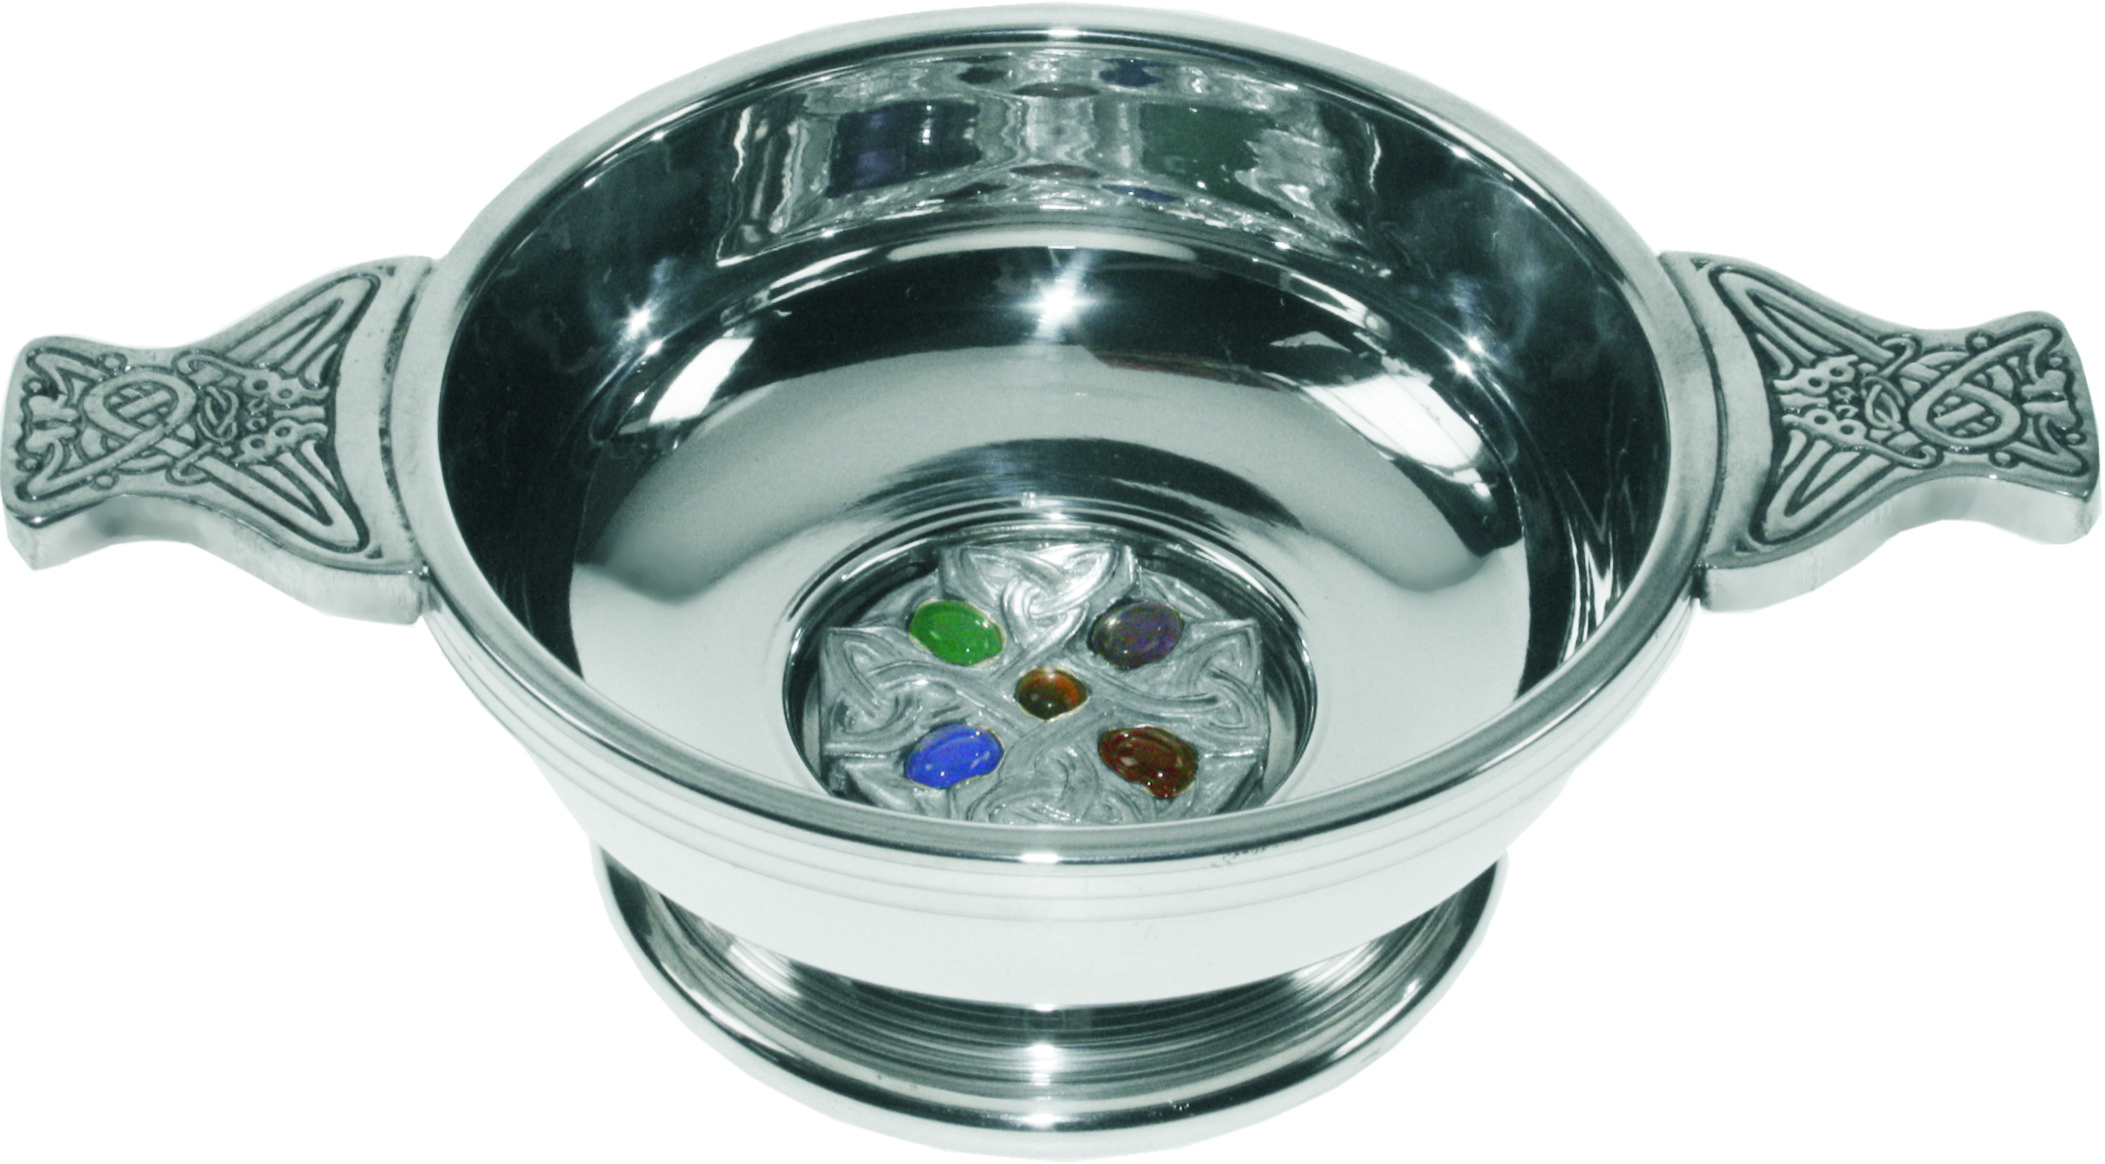 "Pewter Quaich Bowl with Celtic Cross and Embedded Gems 9cm (3.5"")"